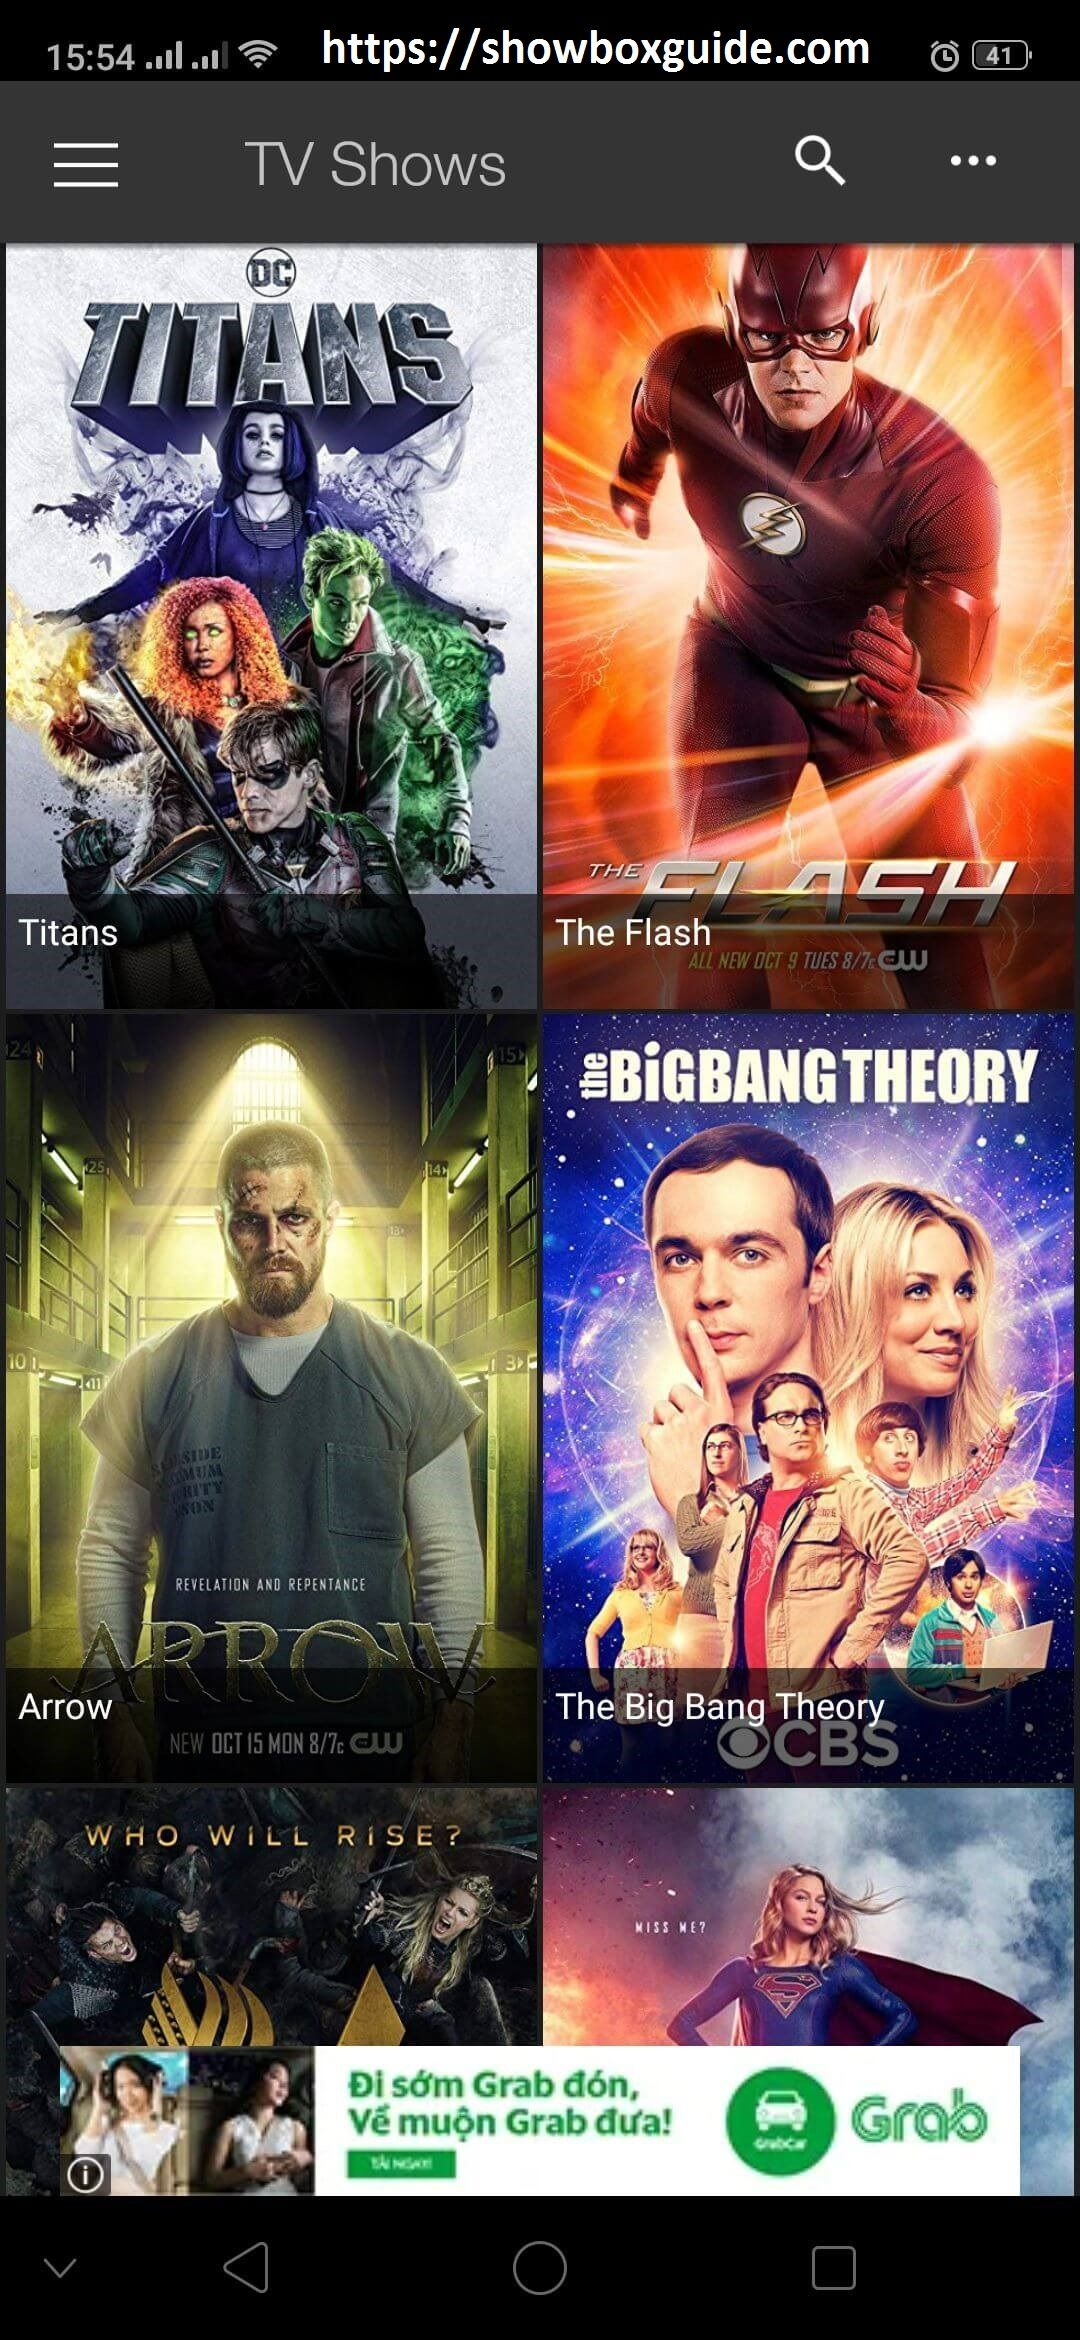 Showbox APK free Download Showbox for Android, iPhone